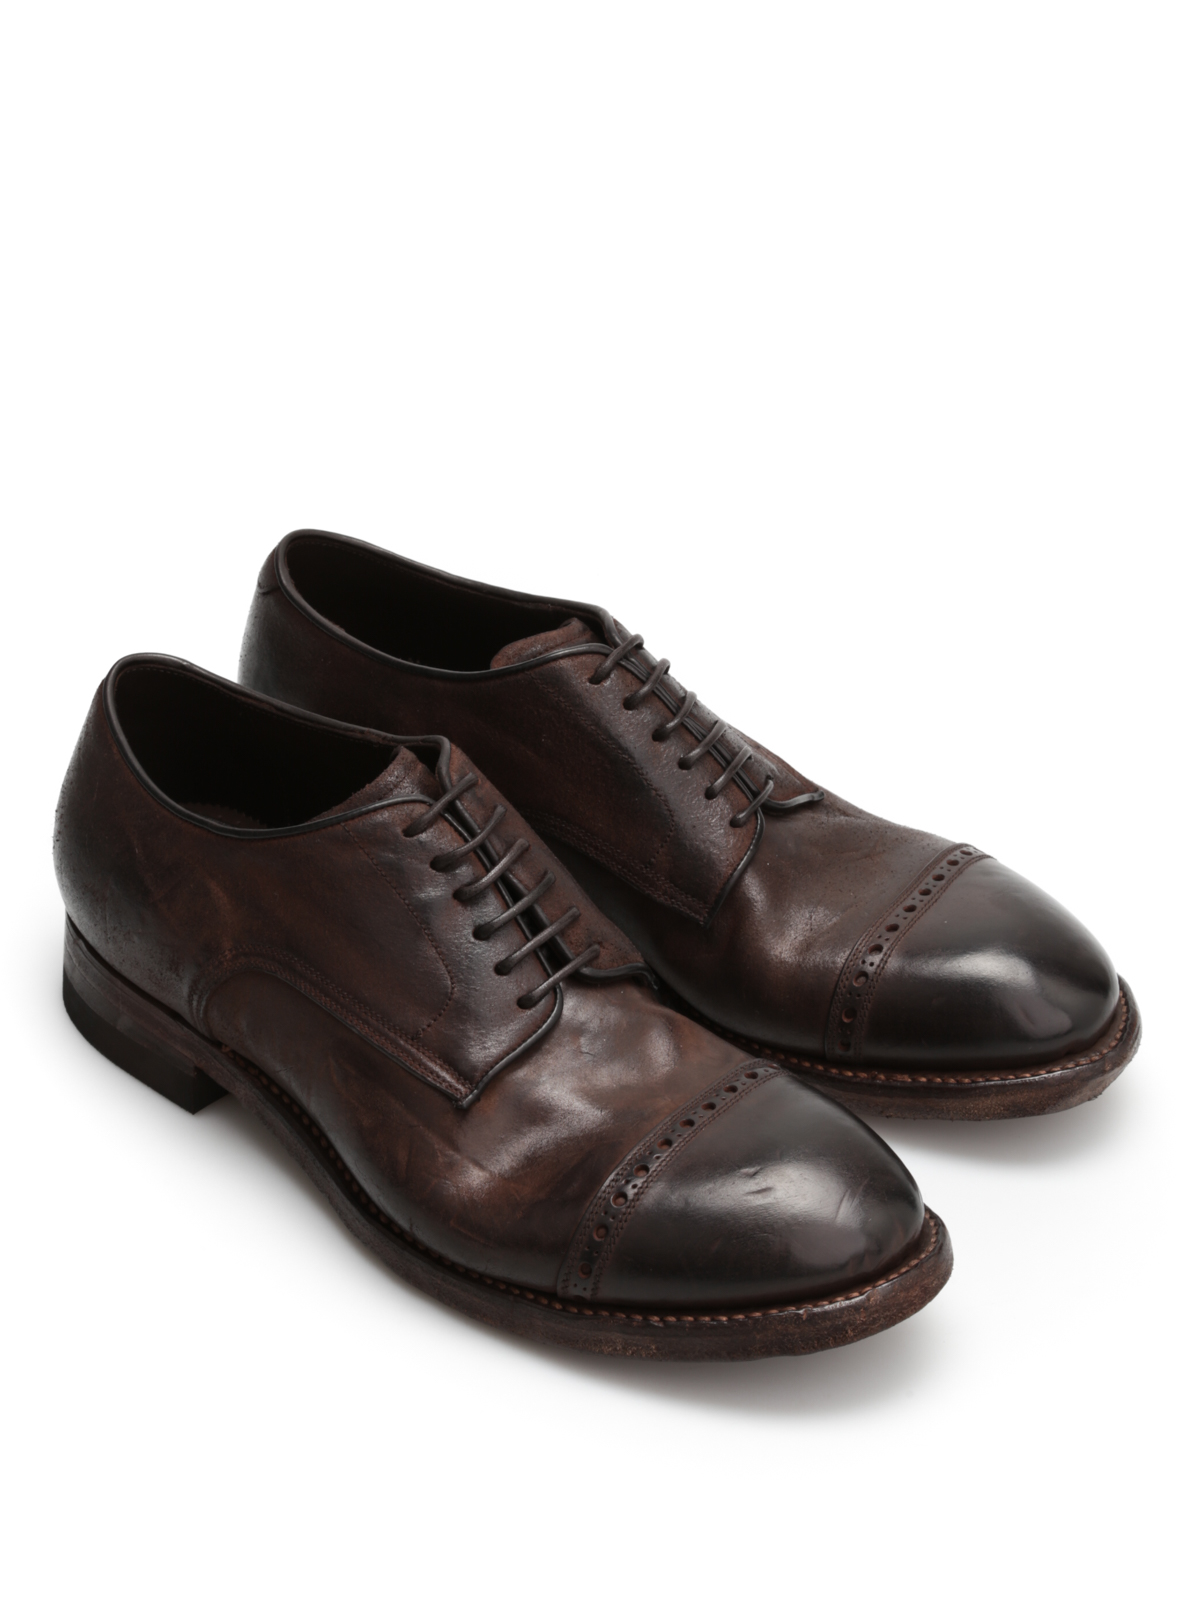 new product f8a0b 77637 Silvano Sassetti - Distressed derby shoes - lace-ups shoes ...